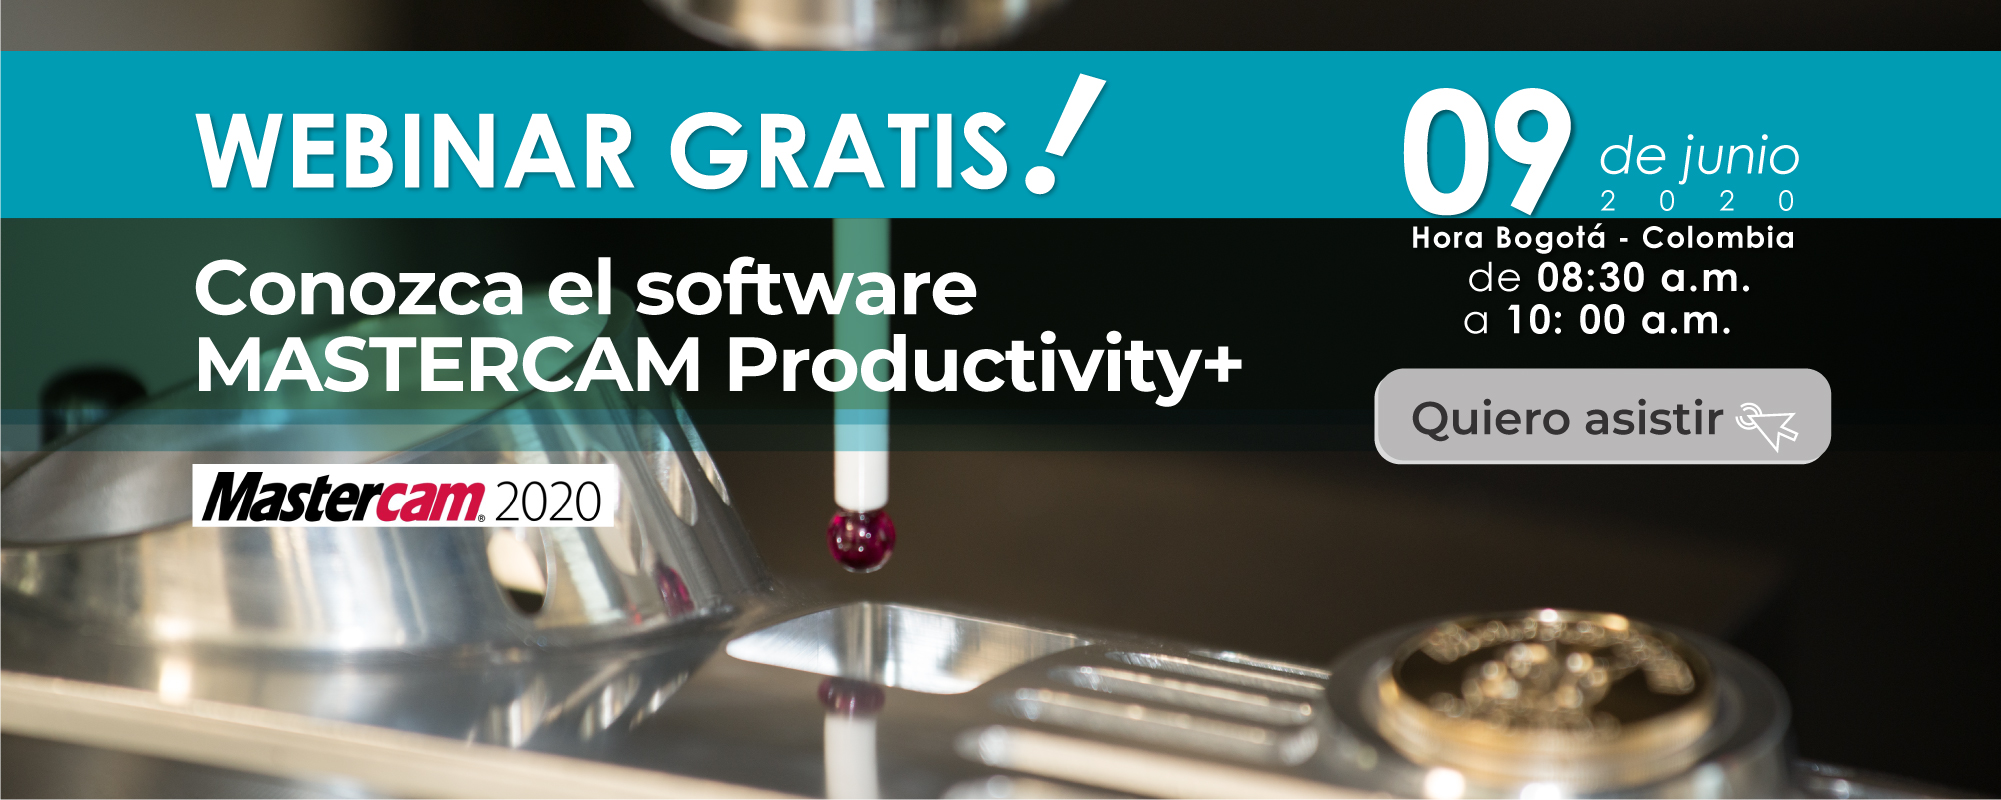 webinar-software-mastercam-productivity-imocom